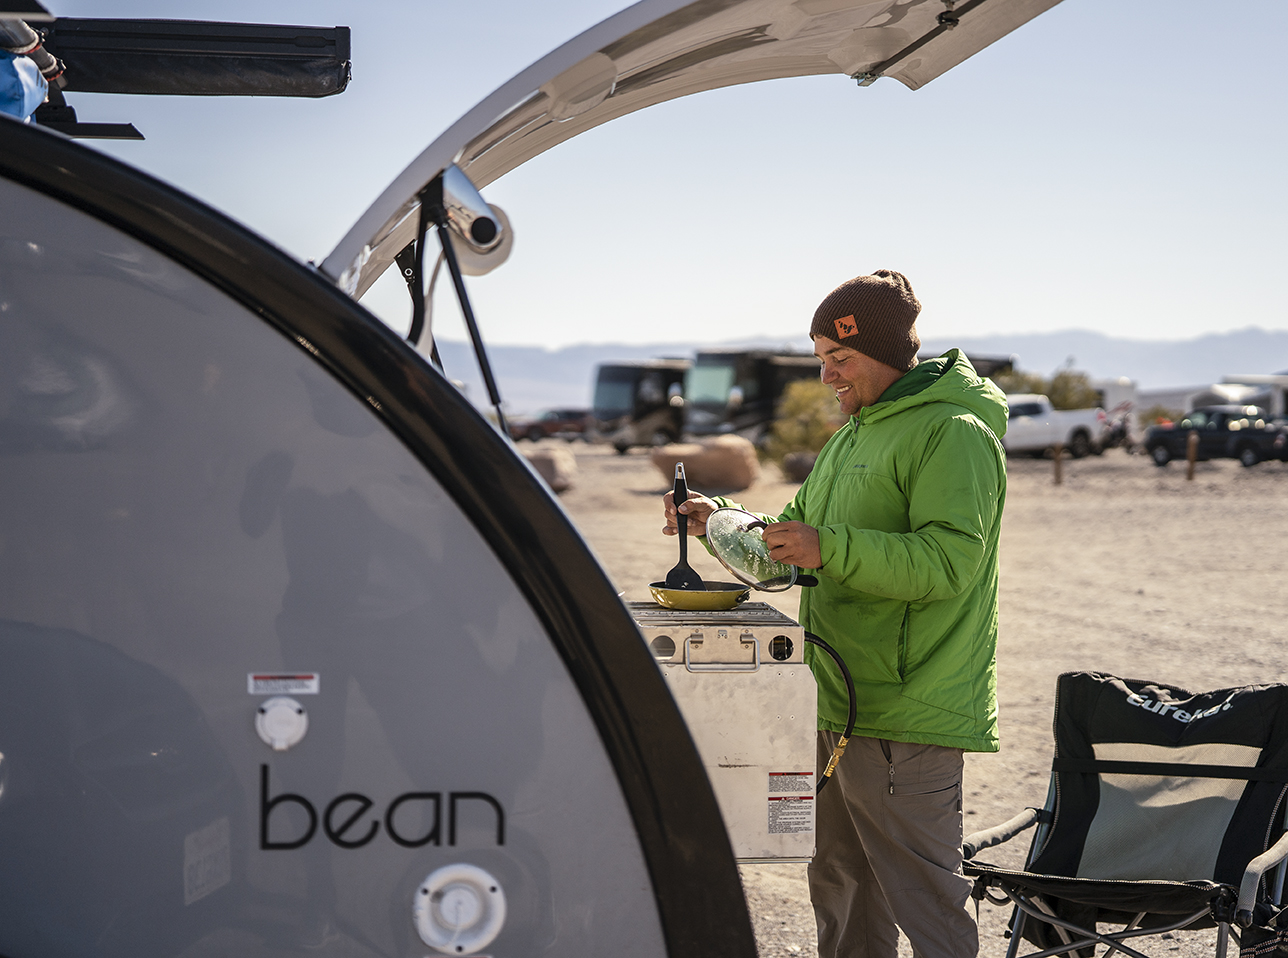 Cooking in the outdoor galley of the Mean Bean teardrop camper.